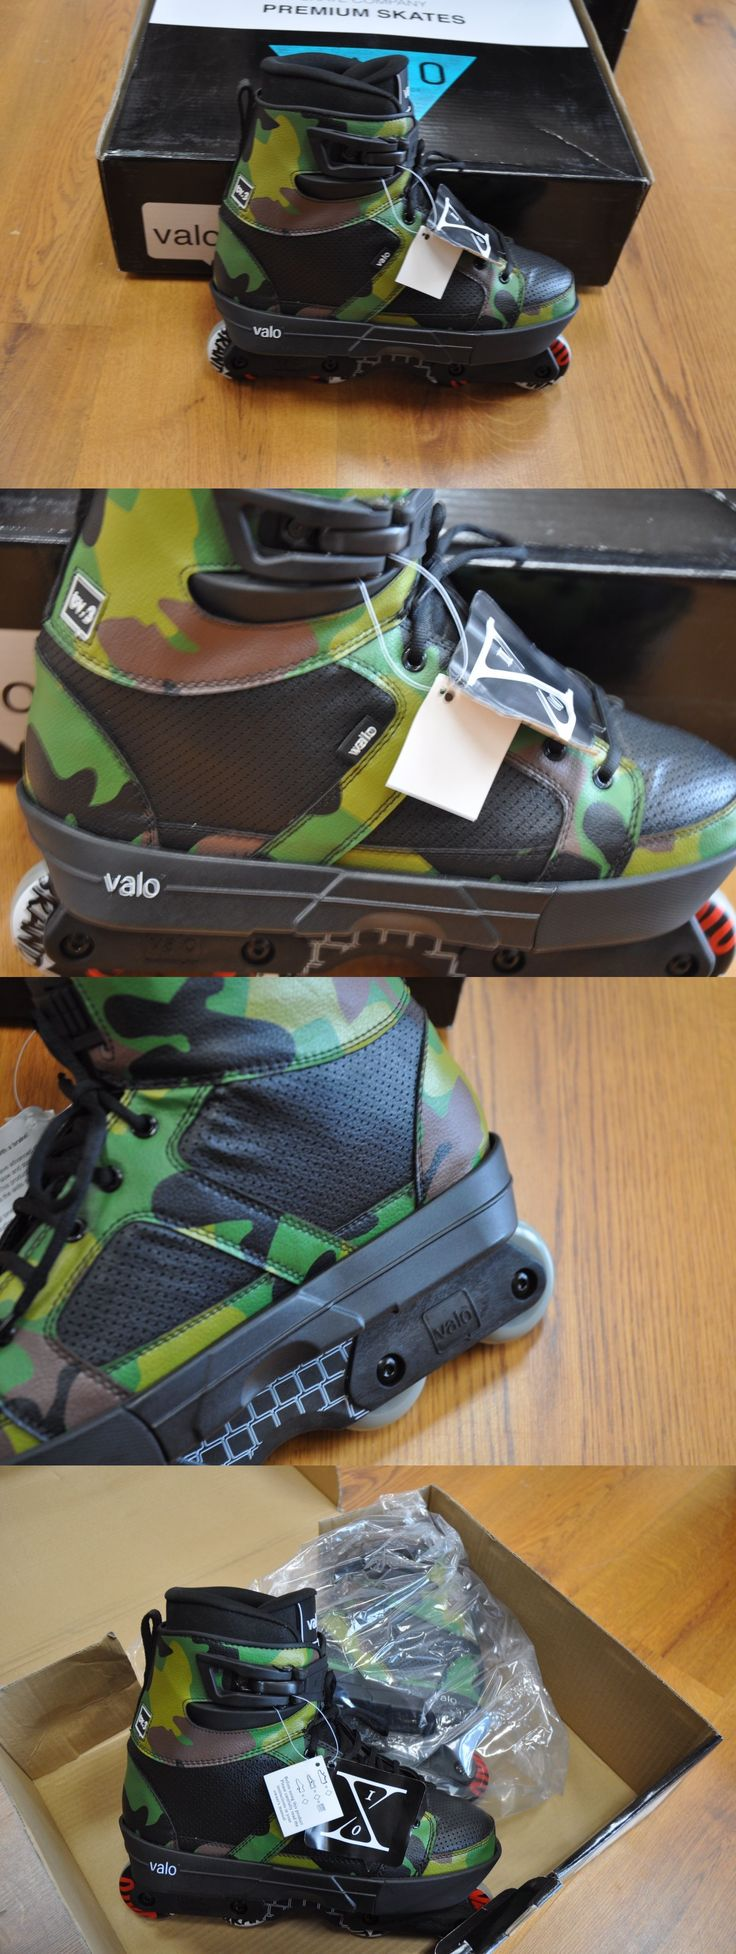 Men 47346: Valo Tv 3 Aggressive Inline Skate New In Box Roces Rollerblades Sale Skates -> BUY IT NOW ONLY: $139.71 on eBay!